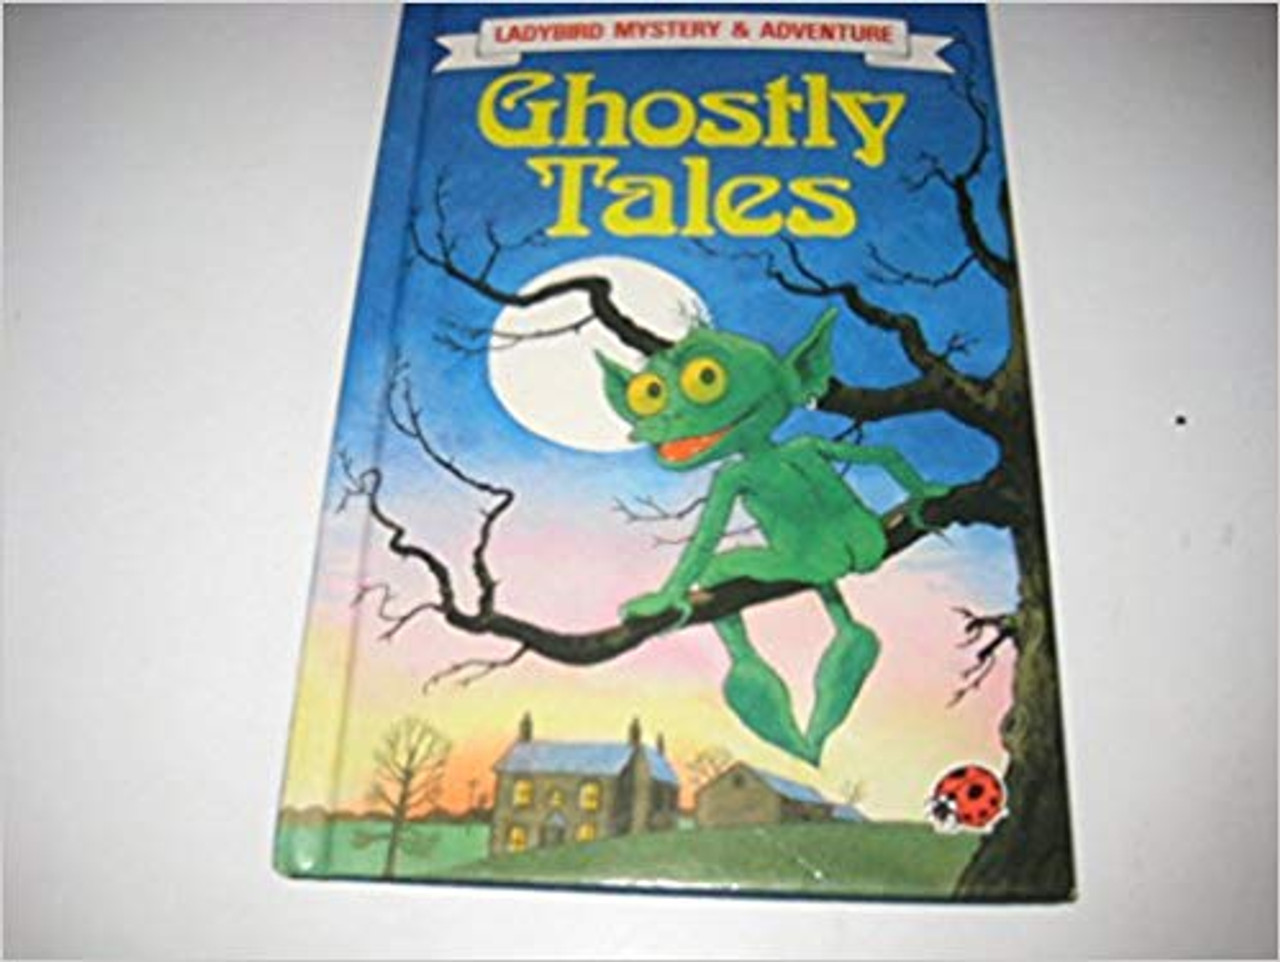 Ladybird / Ghostly Tales (Mystery & adventure)